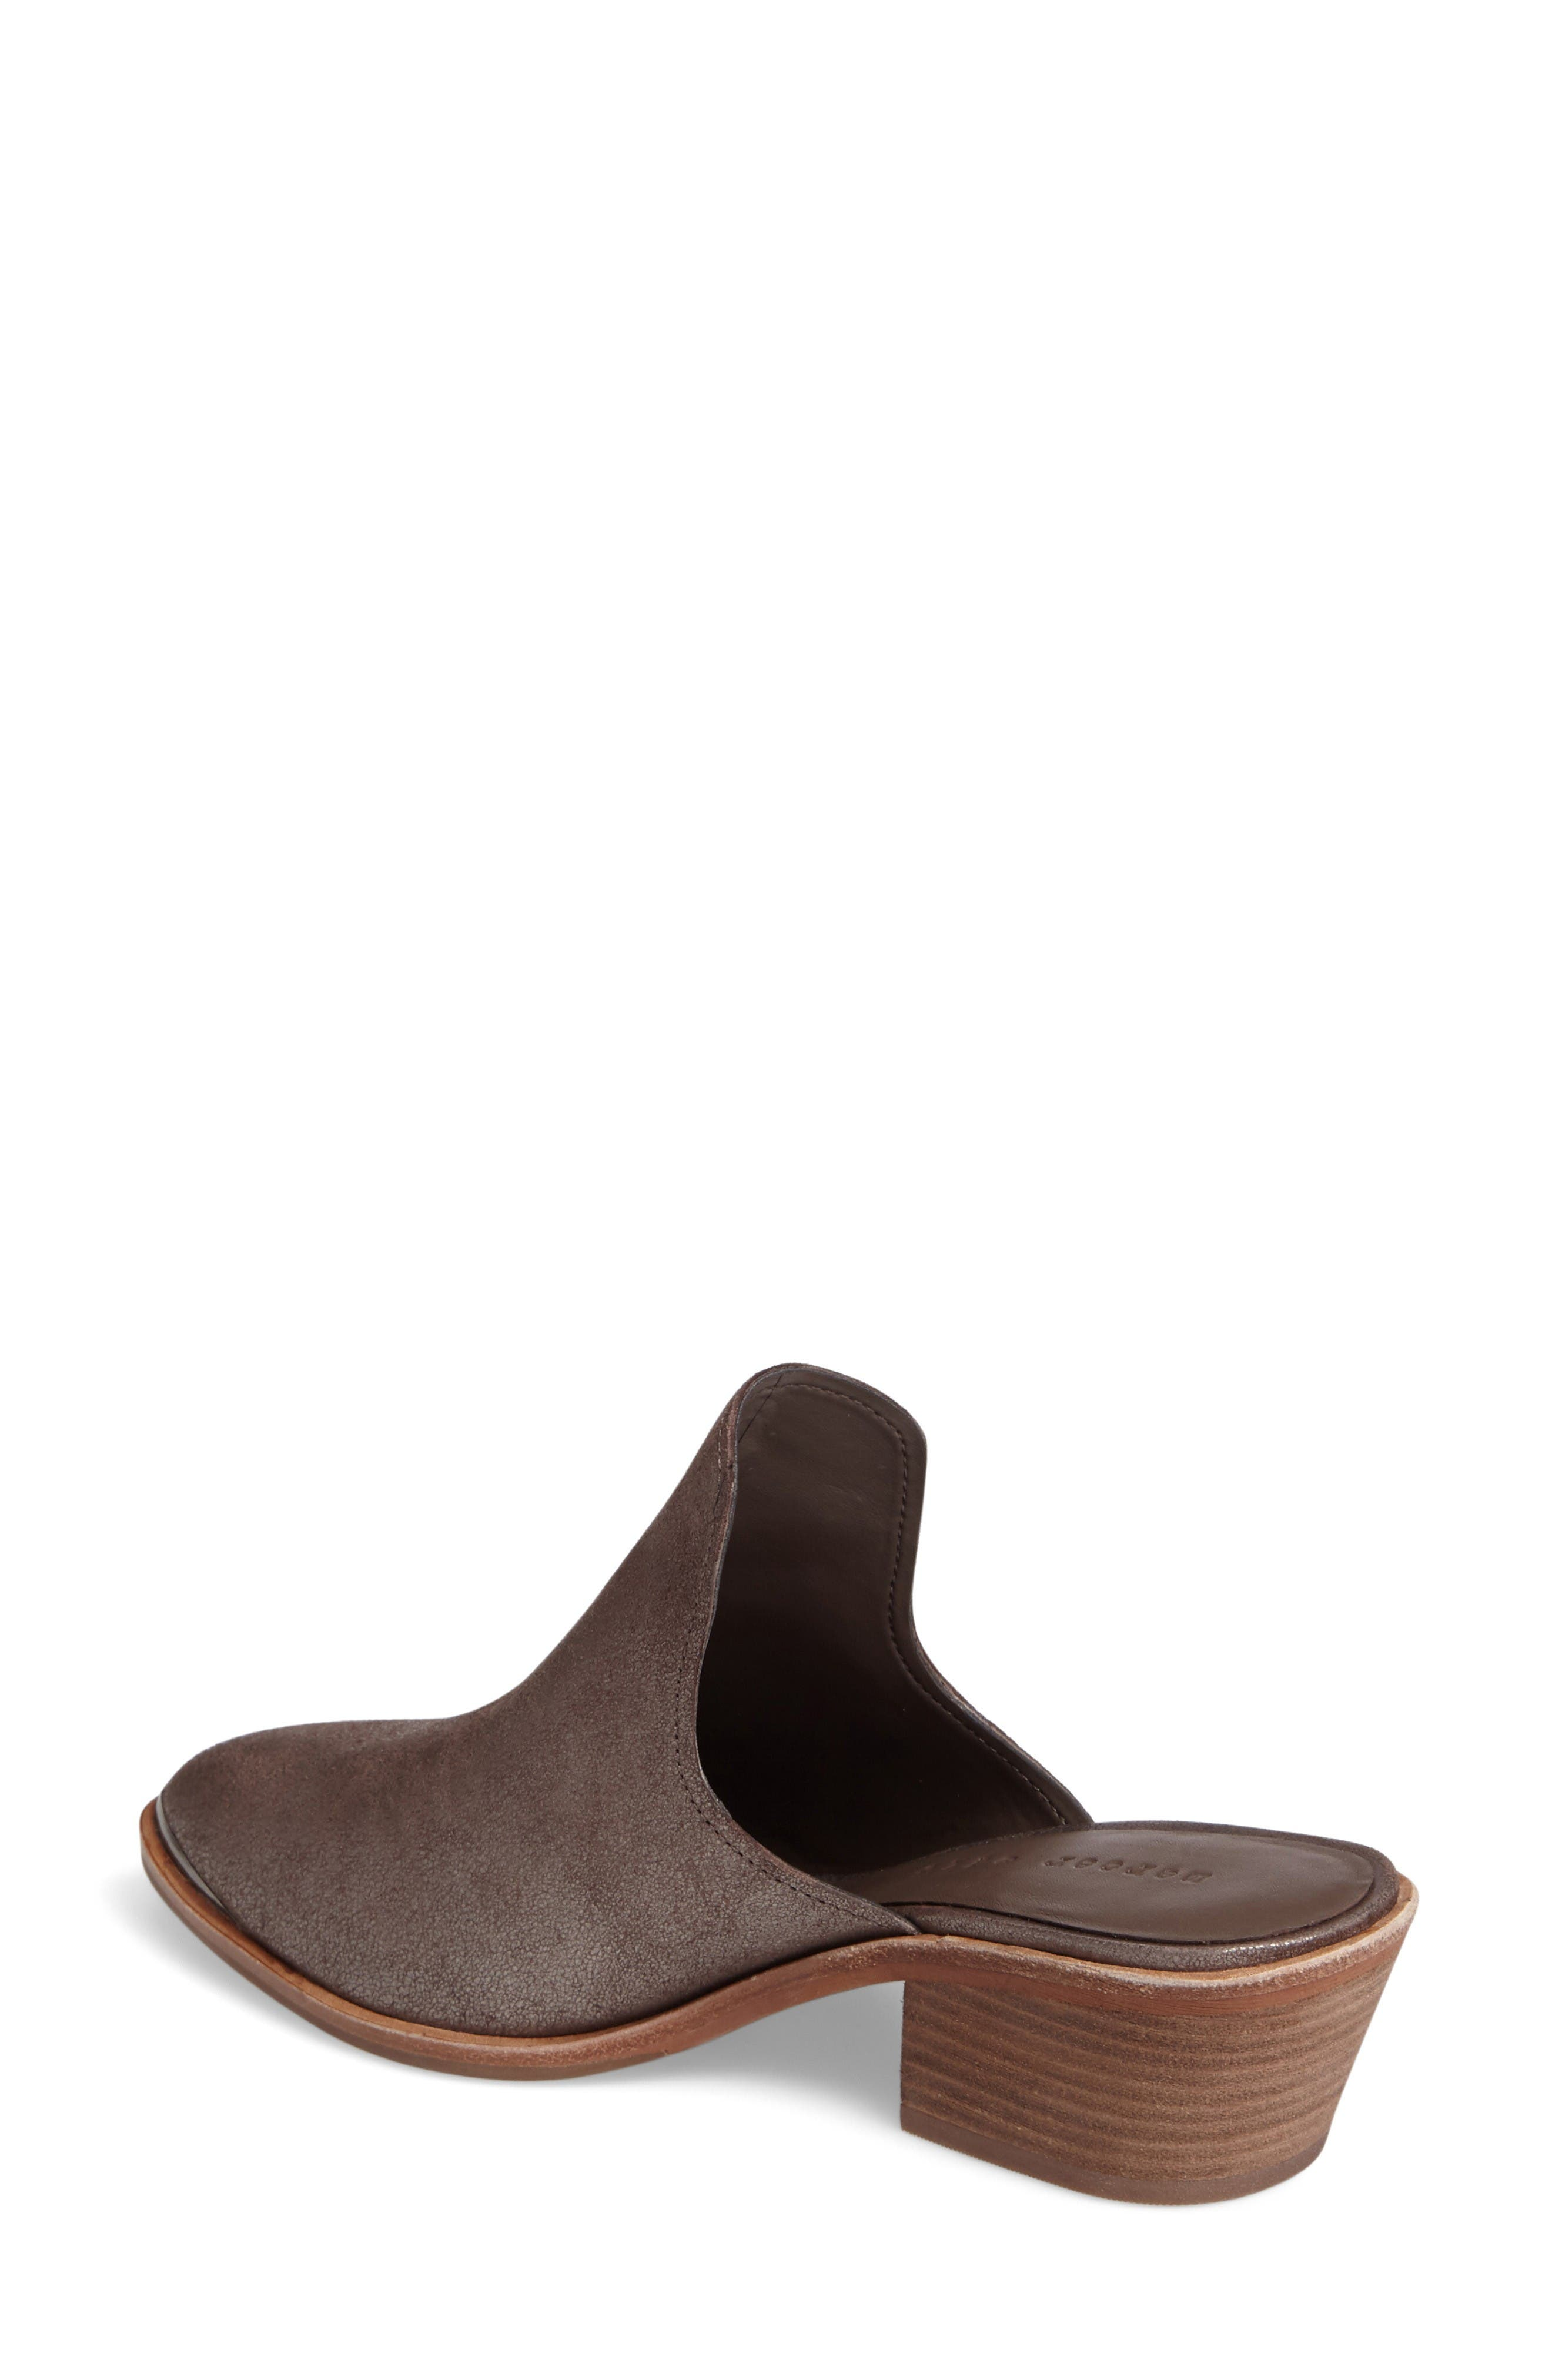 Layitonme Mule,                             Alternate thumbnail 2, color,                             Bronze Leather